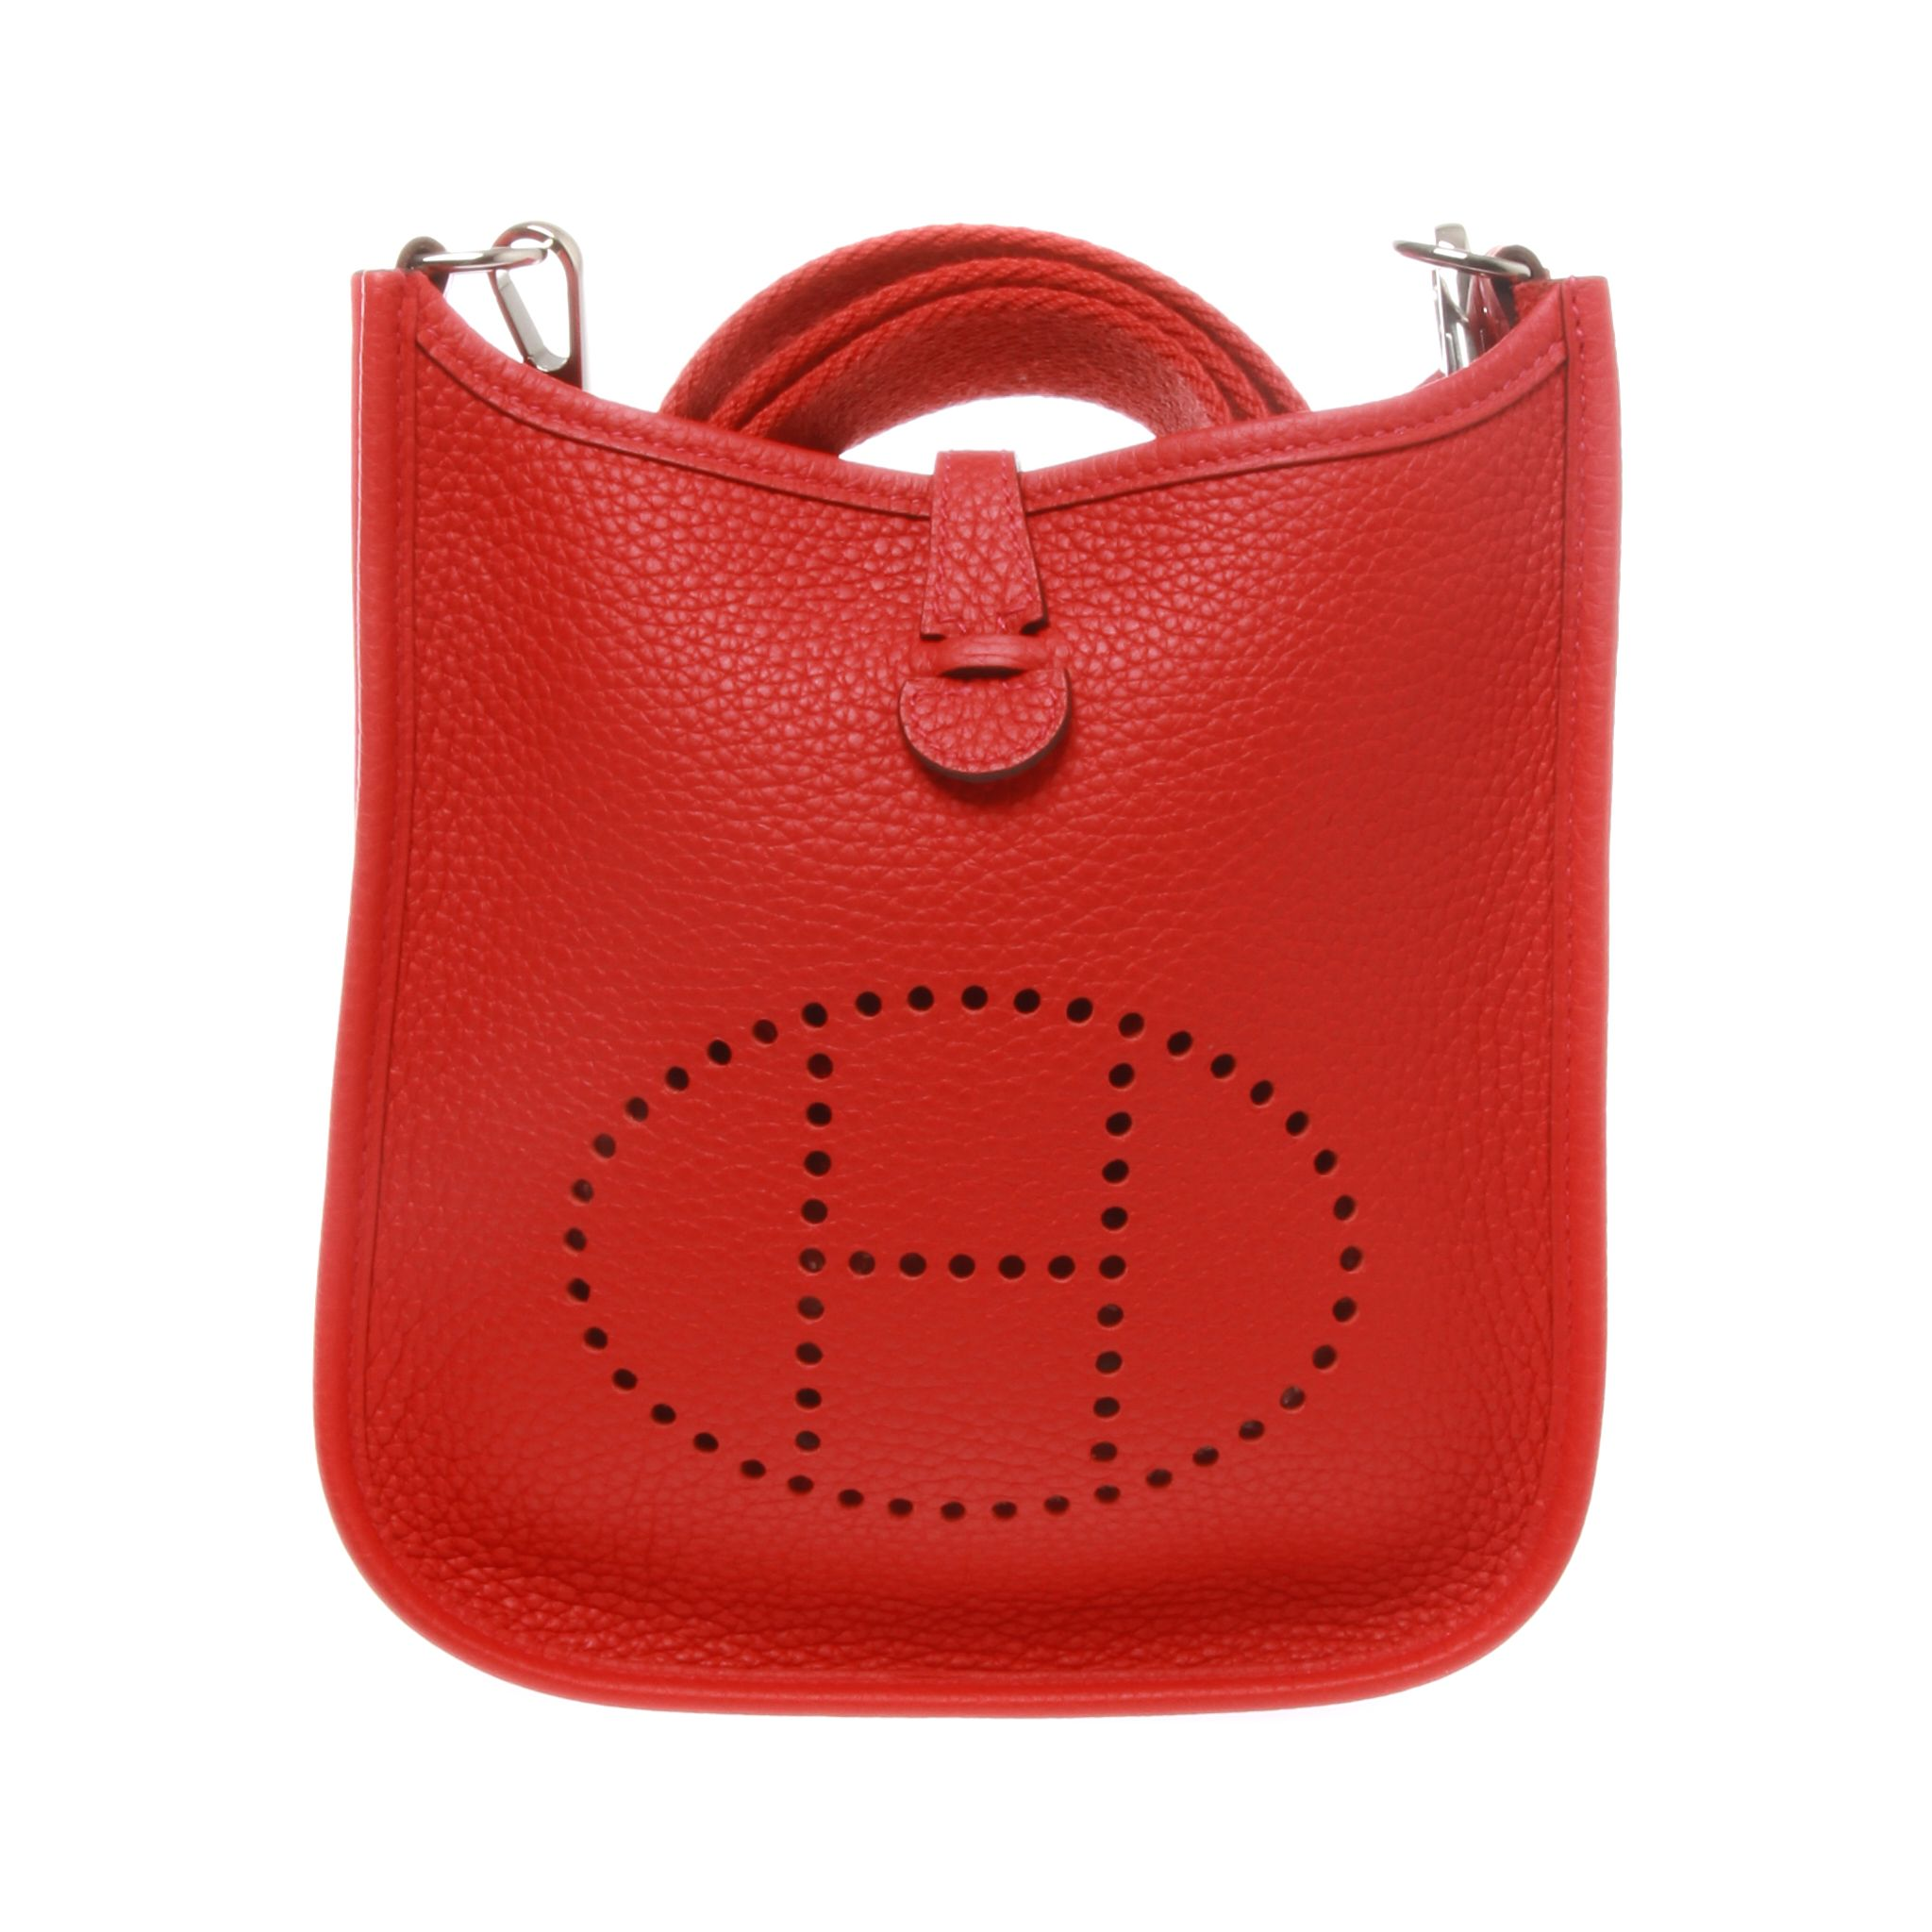 A most wanted Hermes Evelyne 16 Amazone Taurillon Clemence. The eye  catching Rose azare of the Amazon of smallest size